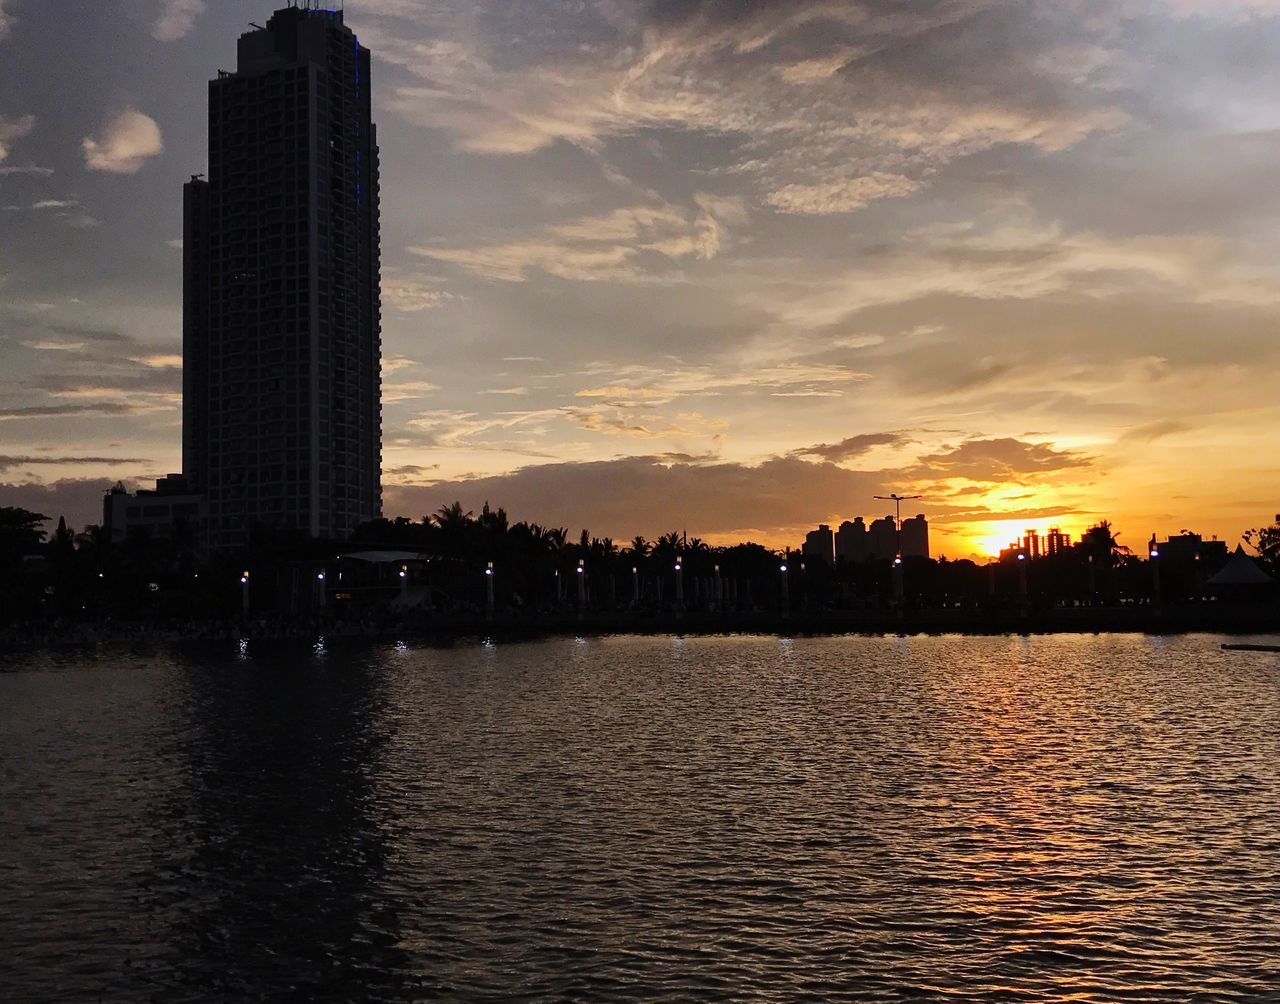 architecture, building exterior, sunset, built structure, skyscraper, waterfront, water, sky, city, cityscape, river, travel destinations, modern, cloud - sky, outdoors, urban skyline, no people, nature, beauty in nature, day